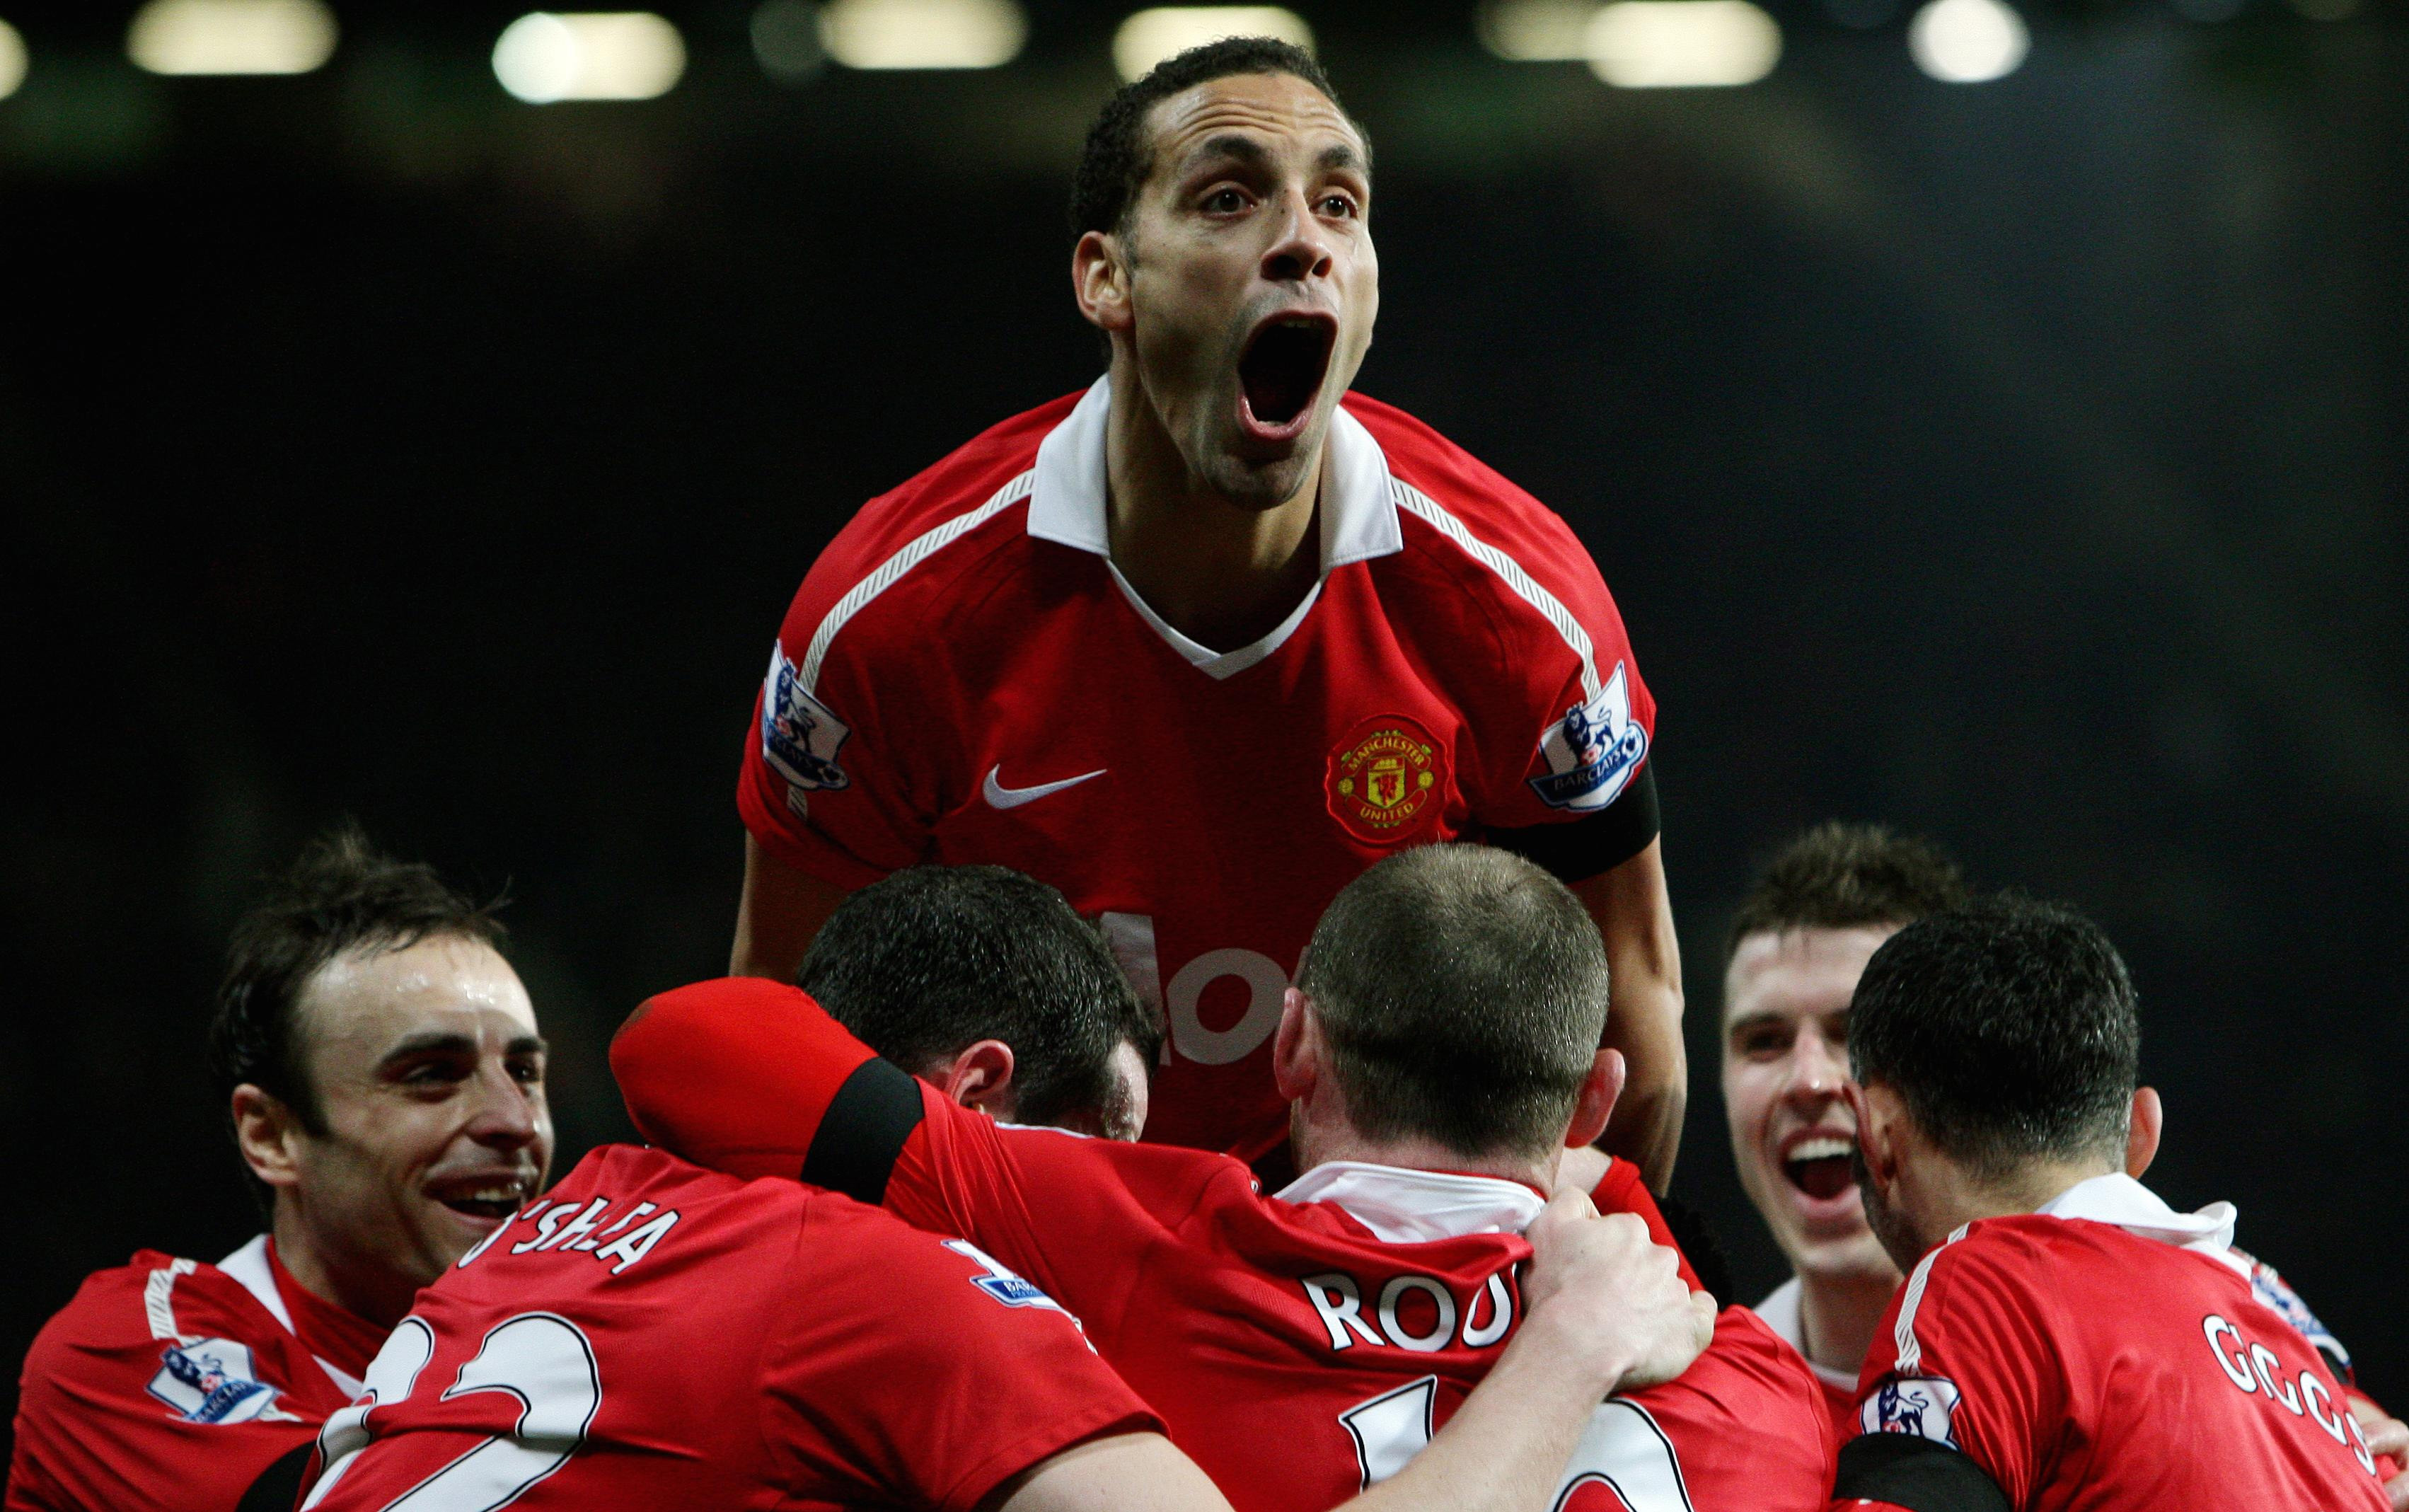 Rio Ferdinand spent 12 years as a player at Manchester United